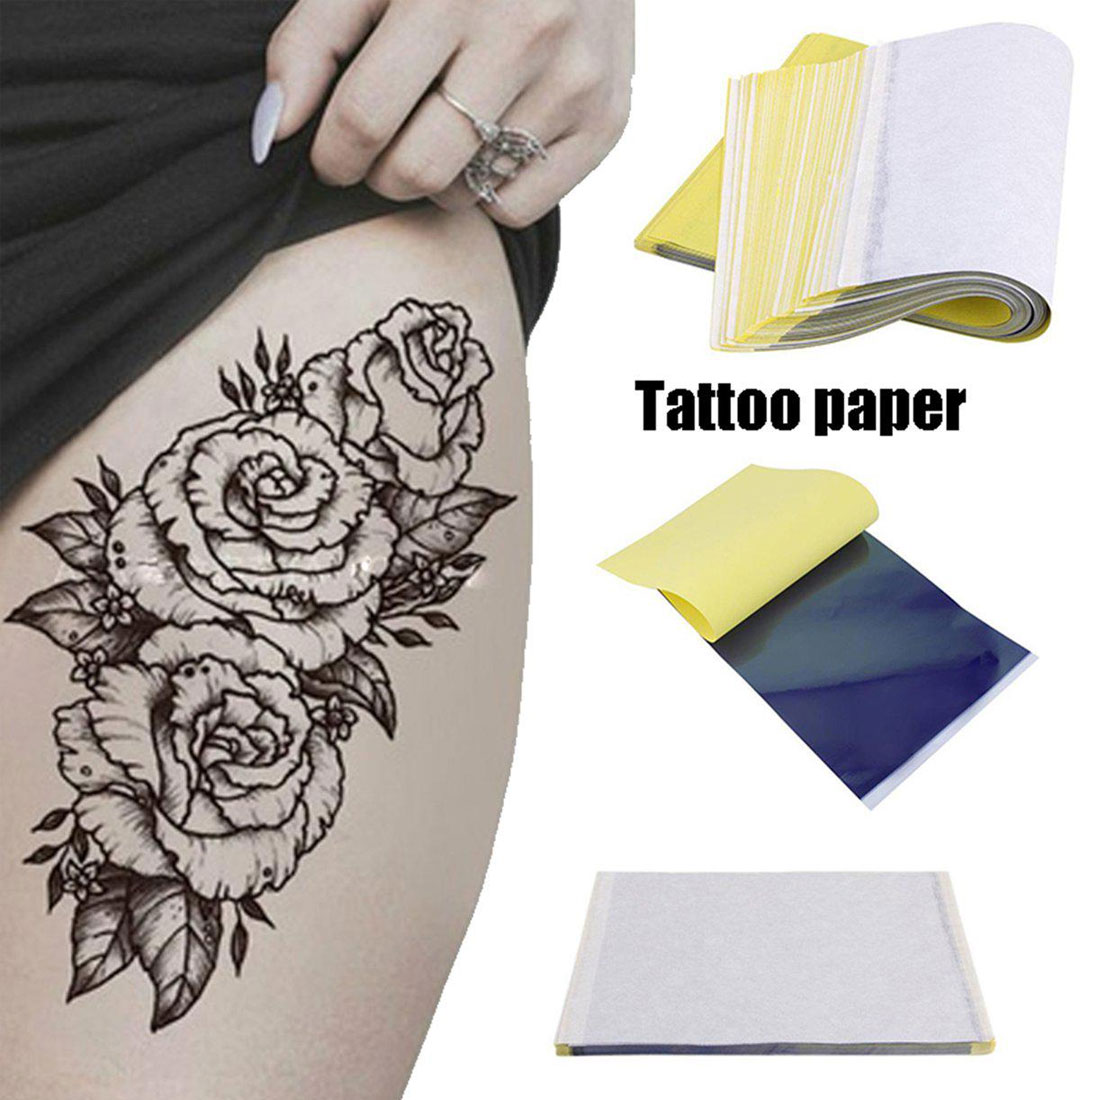 10Pcs/Lot 4 Layer Carbon Thermal Stencil Tattoo Transfer Paper Copy Paper Tracing Paper Professional Tattoo Body Tattoo Stickers couples blanket